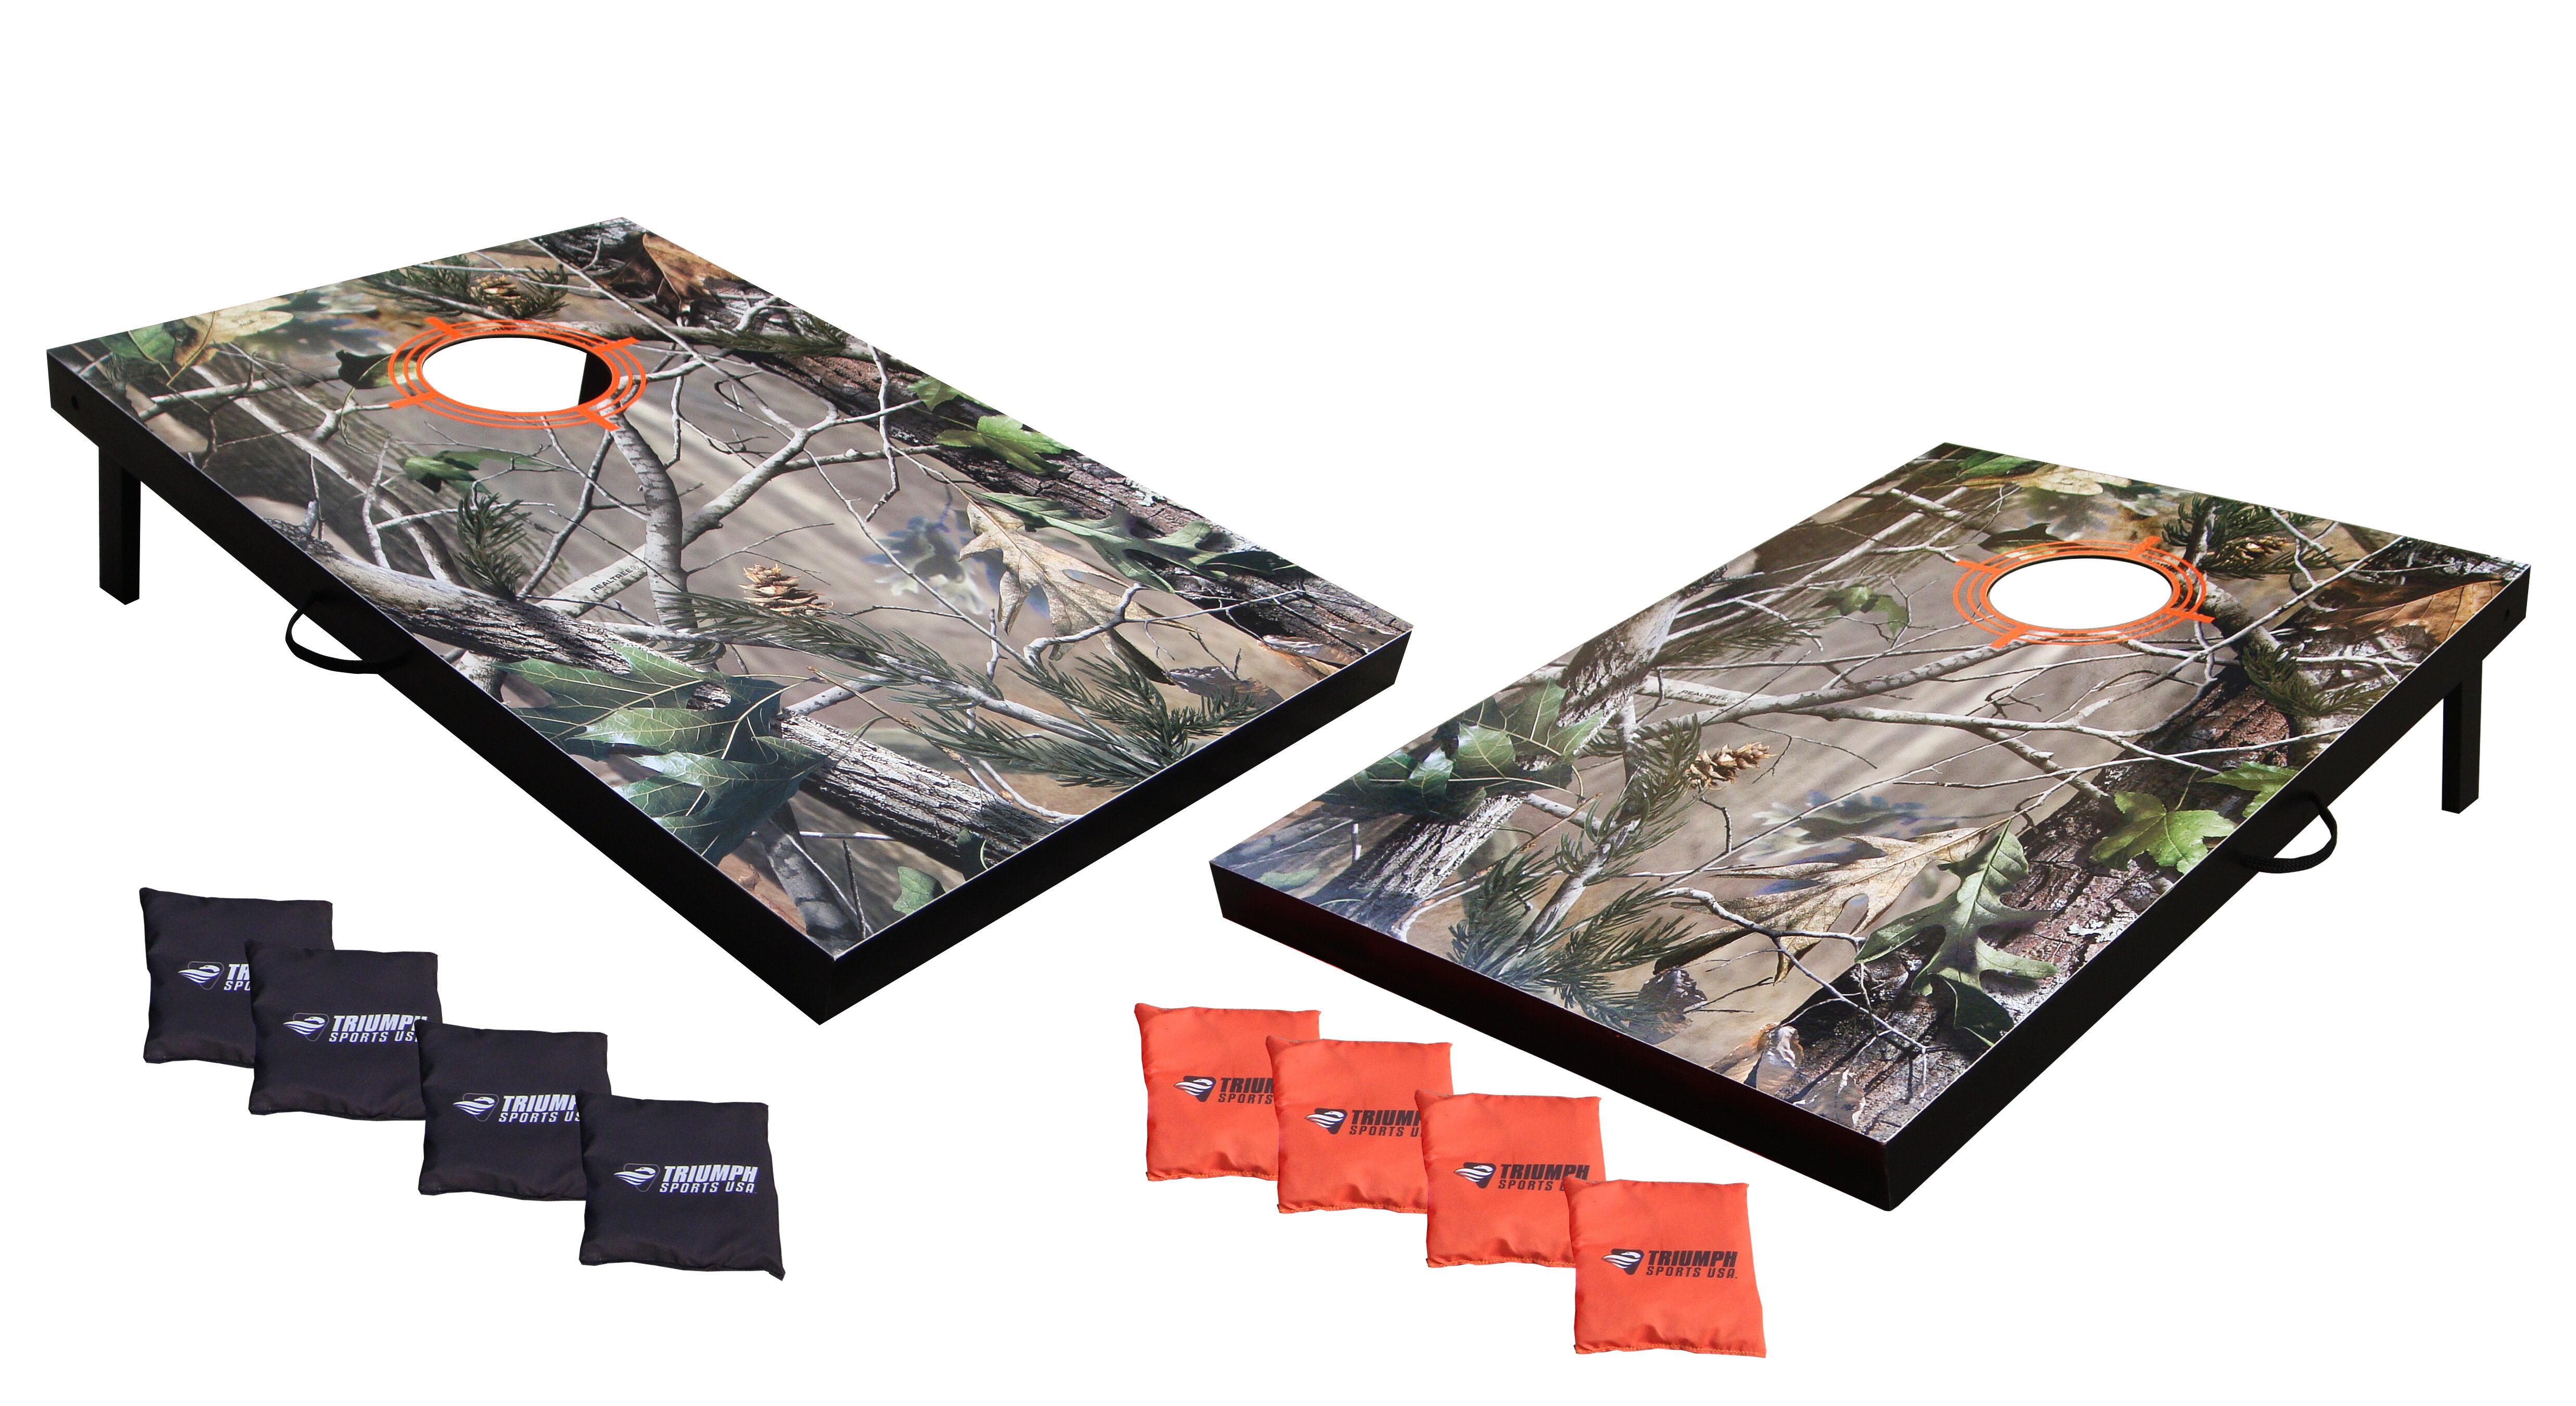 Remarkable Triumph Sports Usa 2 X 3 Realtree Advanced Tournament Bean Ocoug Best Dining Table And Chair Ideas Images Ocougorg